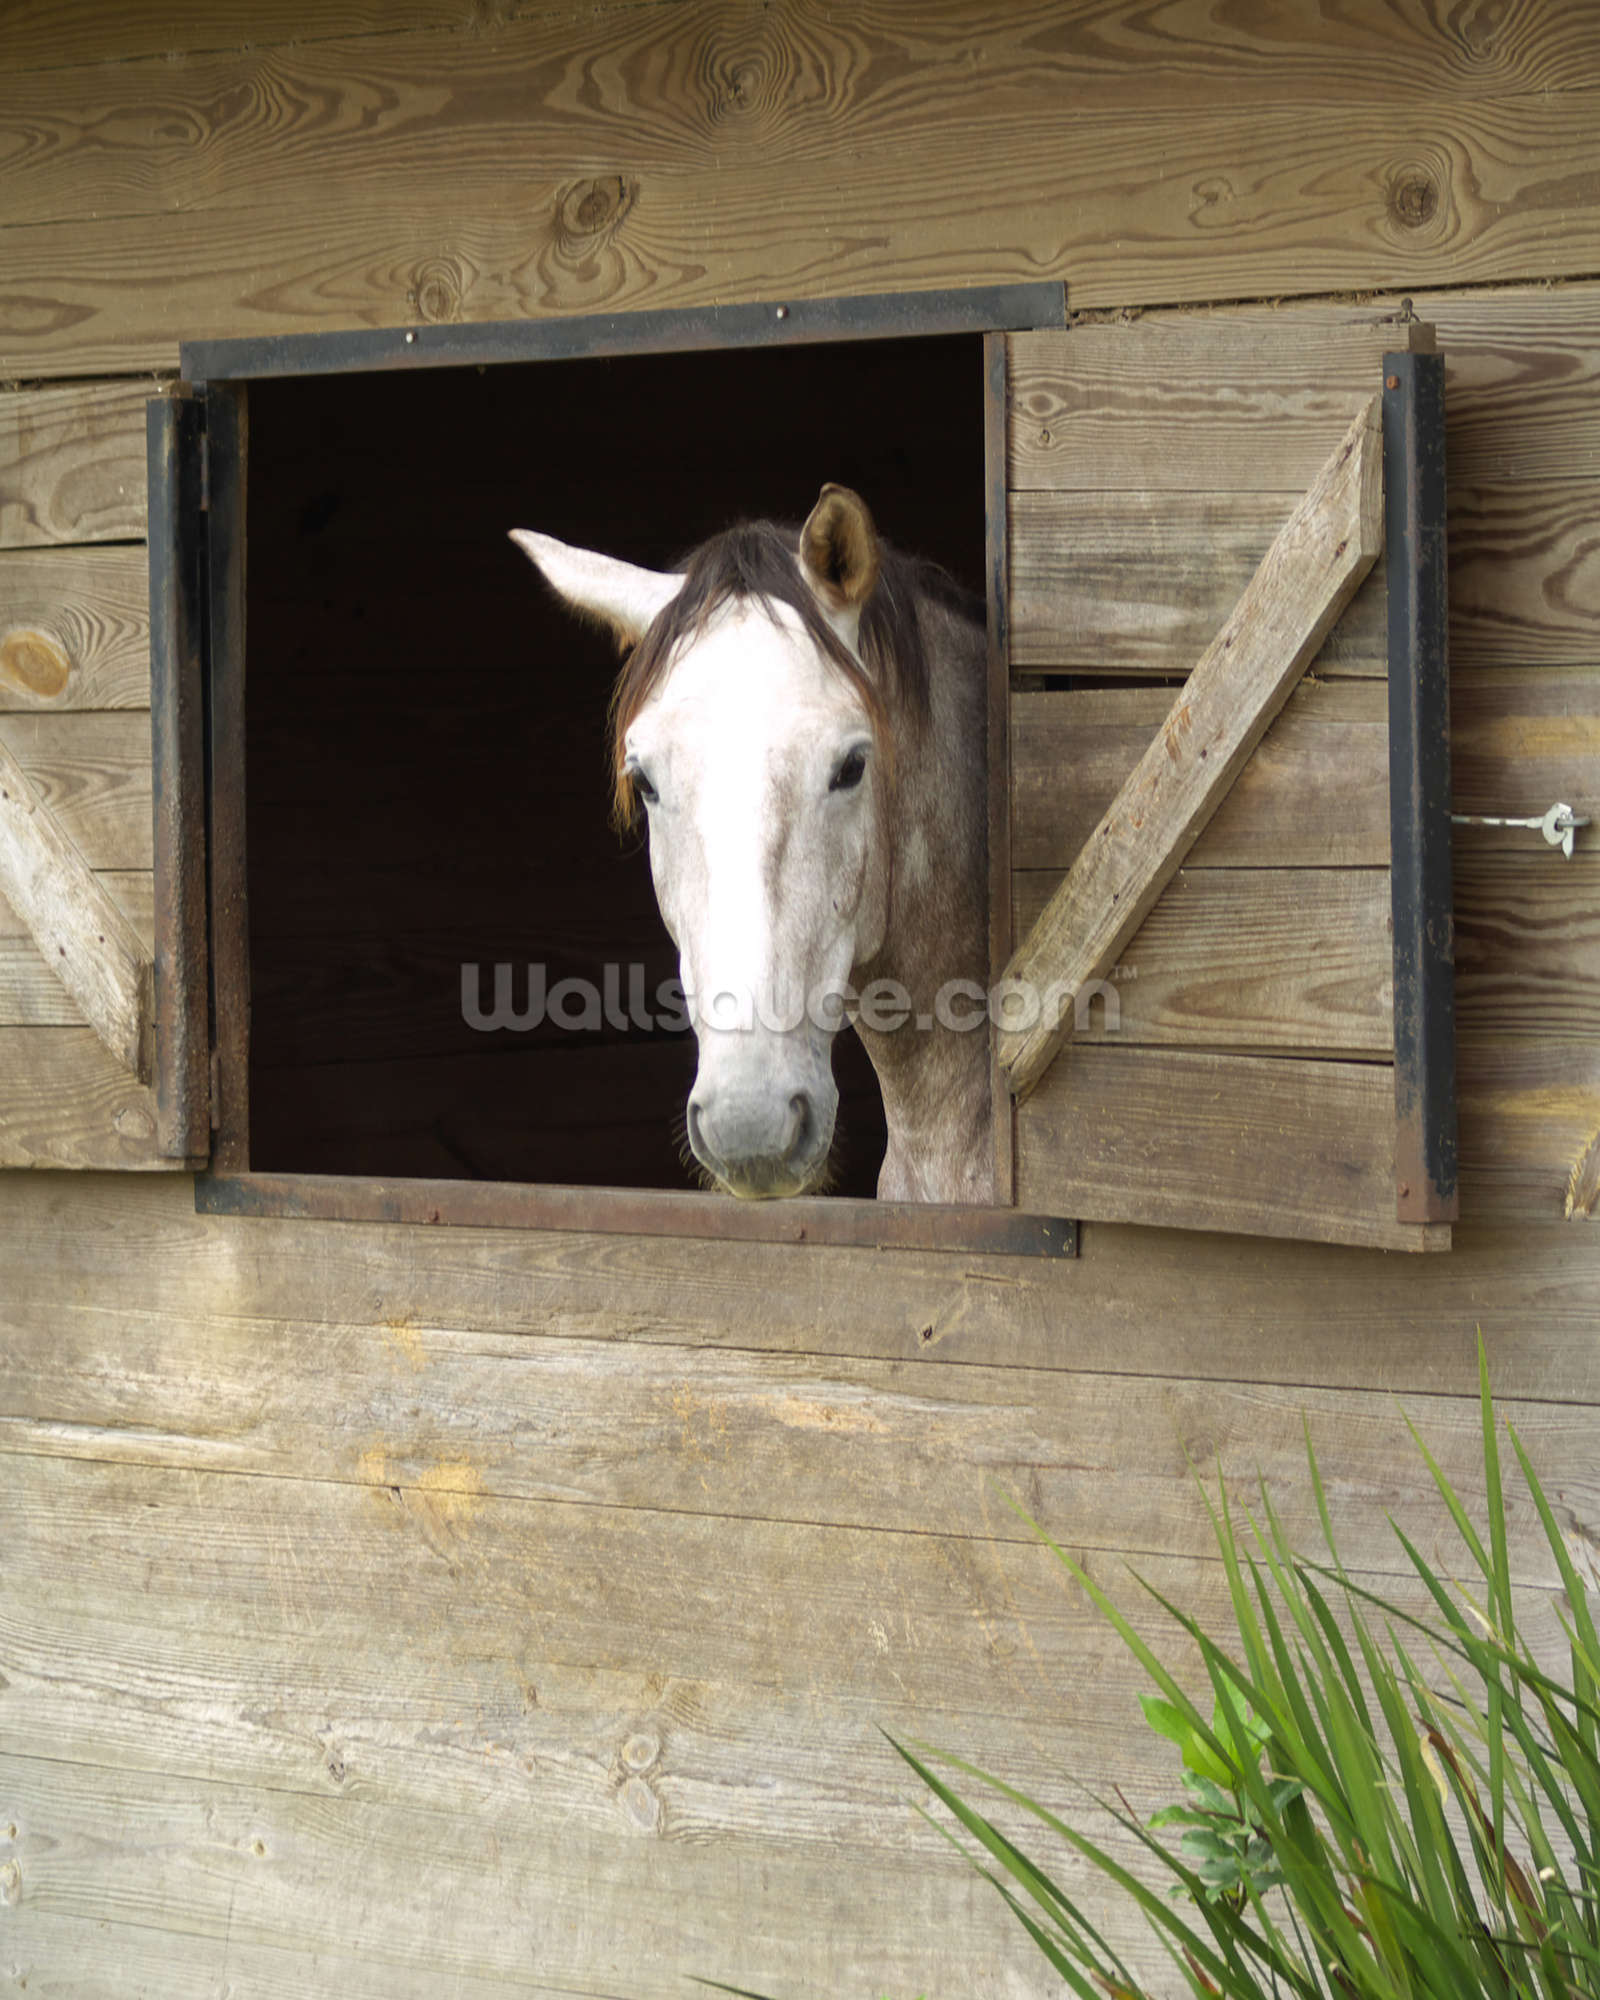 Stabled horse wallpaper wall mural wallsauce australia for Equestrian wall mural